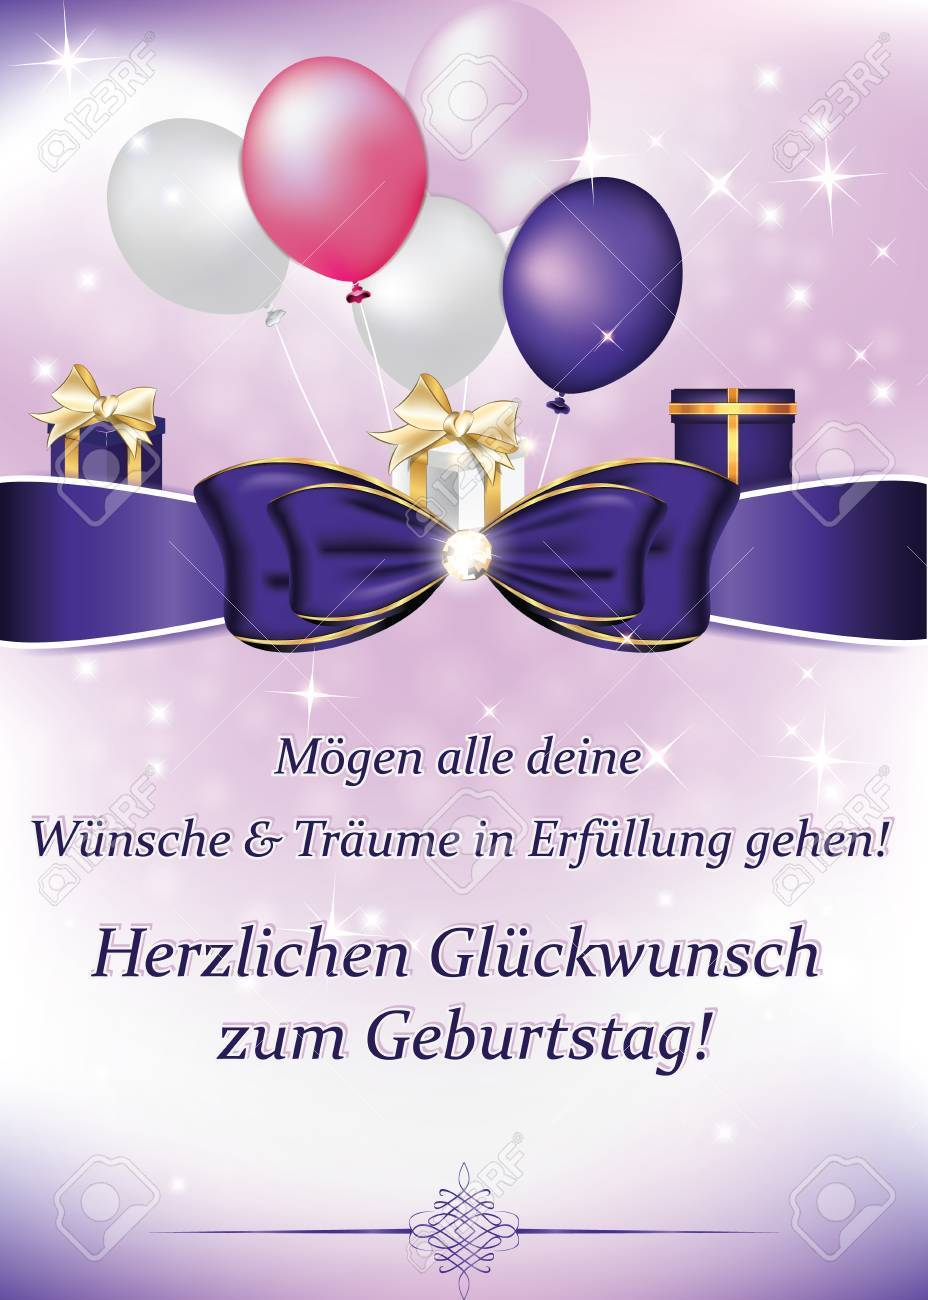 German Birthday Greeting Card May All Your Dreams And Wishes Come True Happy